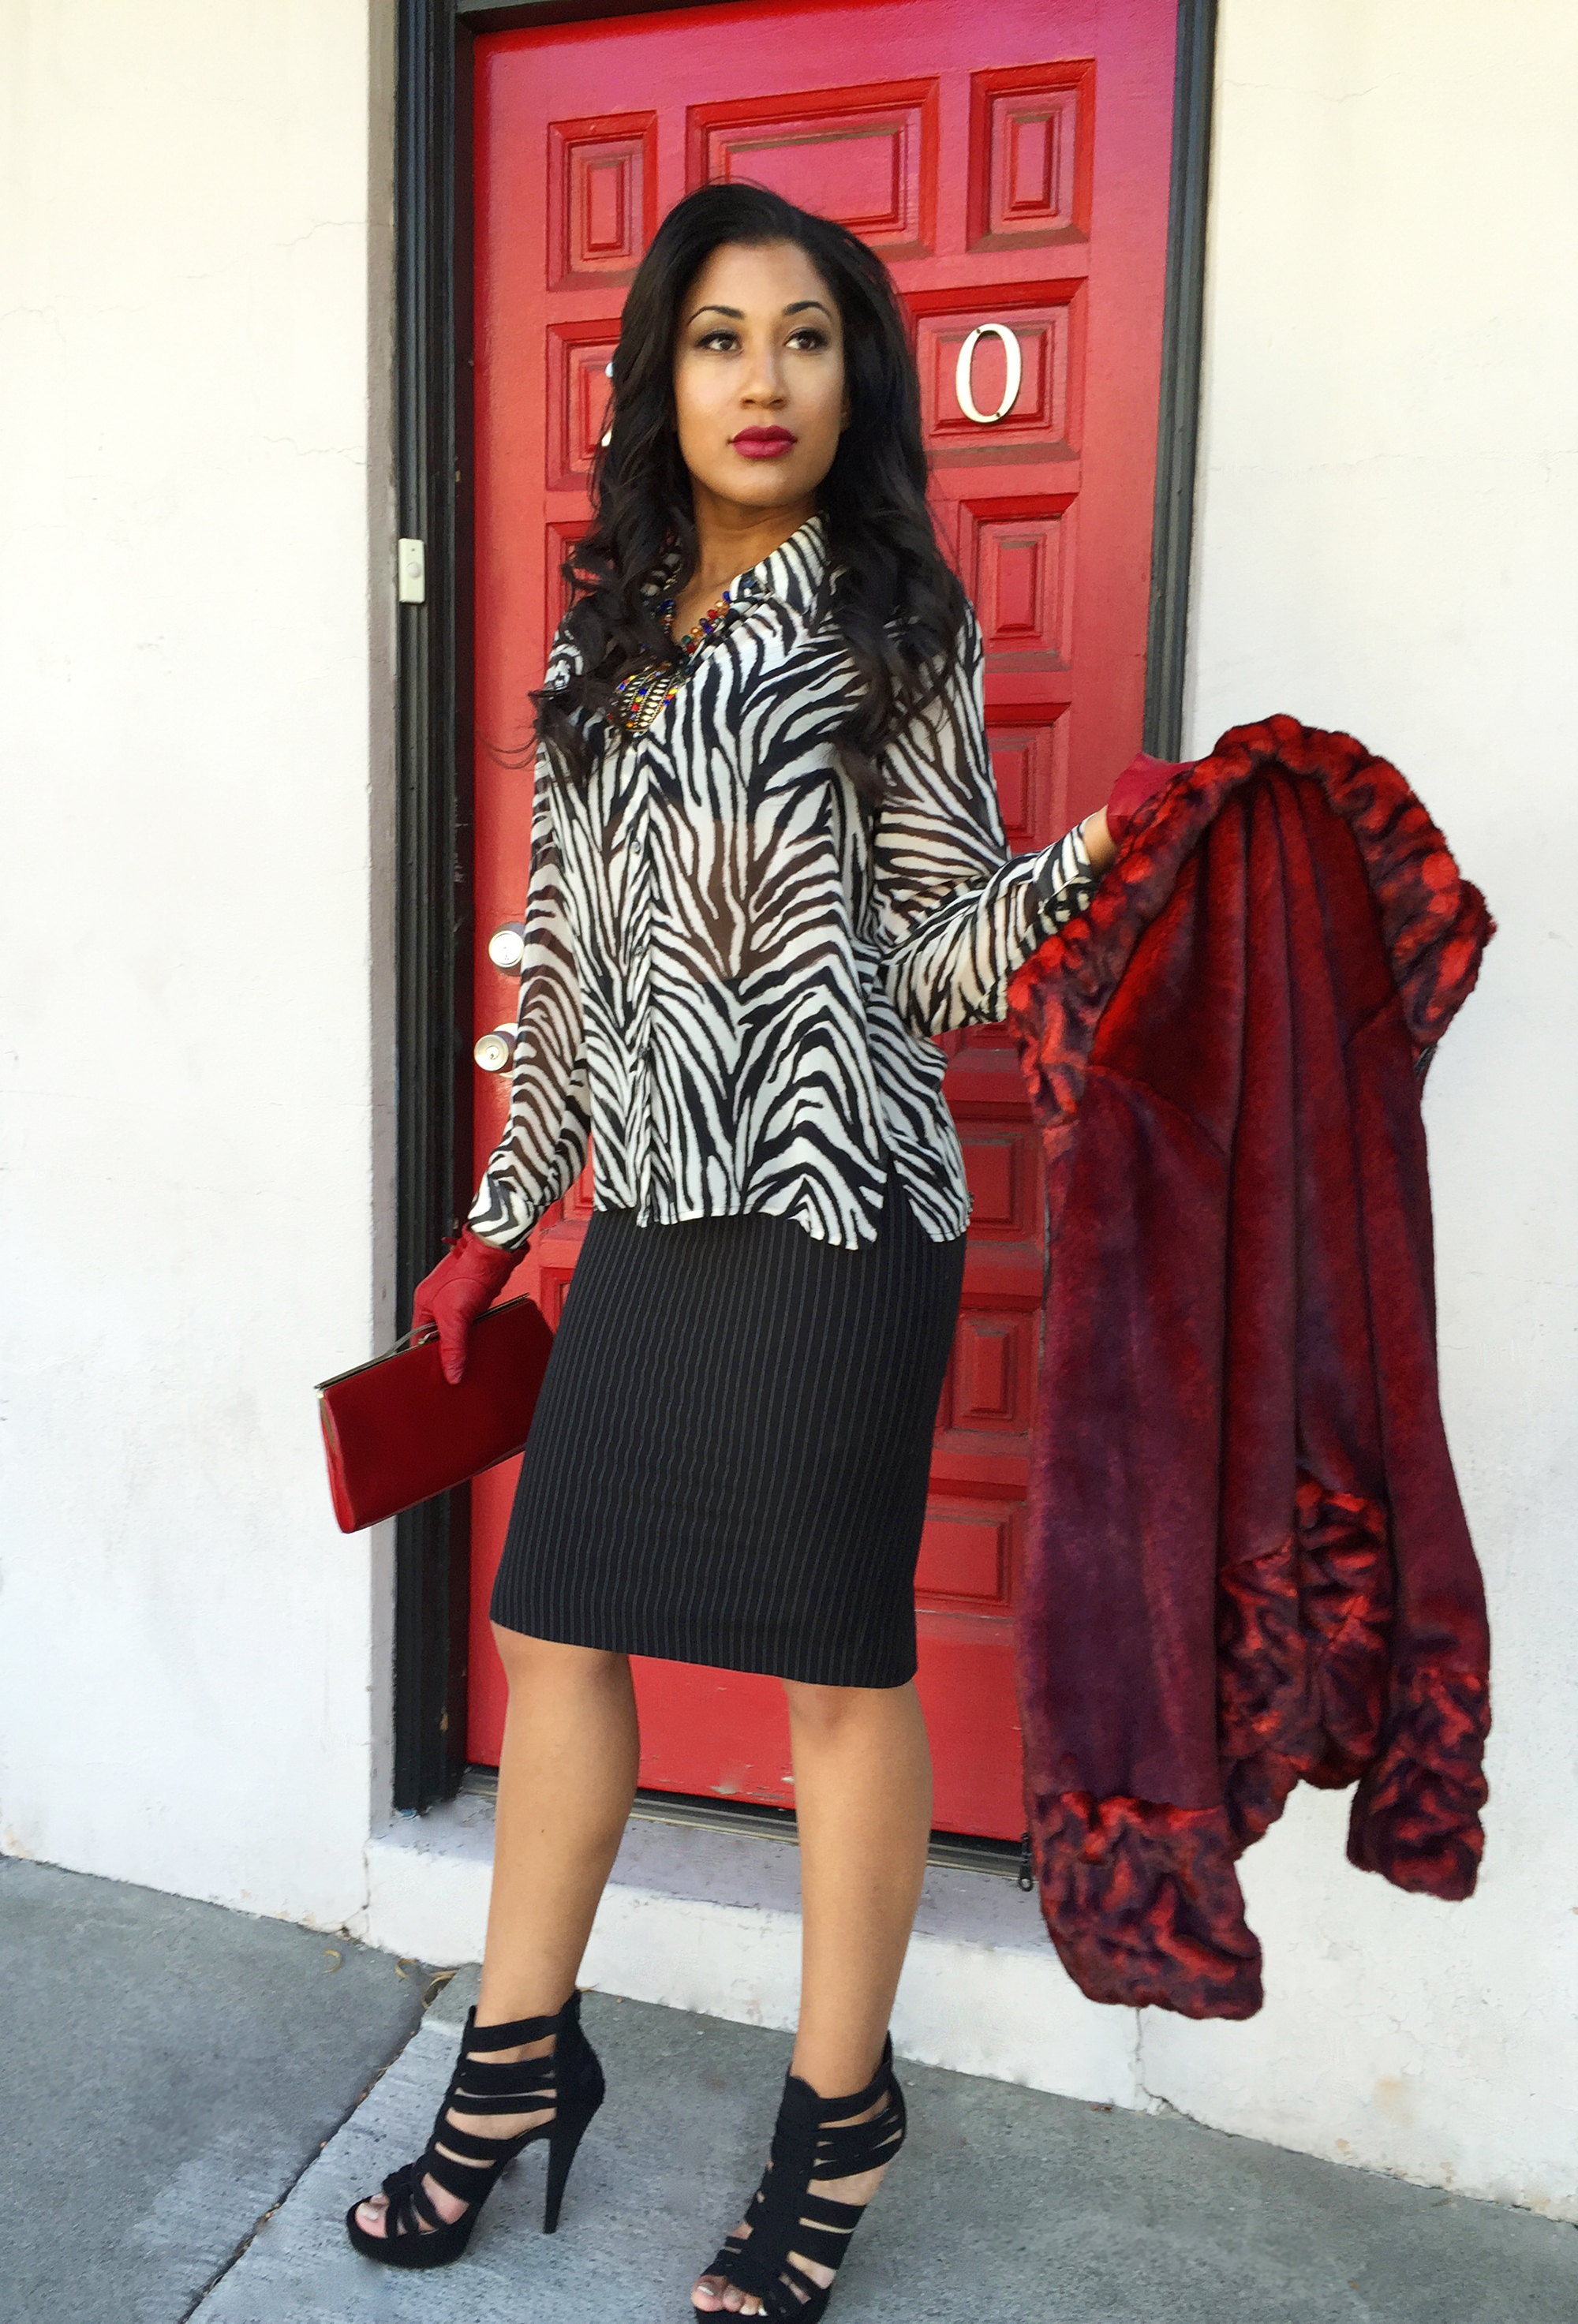 Zebra-blouse-Red-coat-2-2000px.jpg